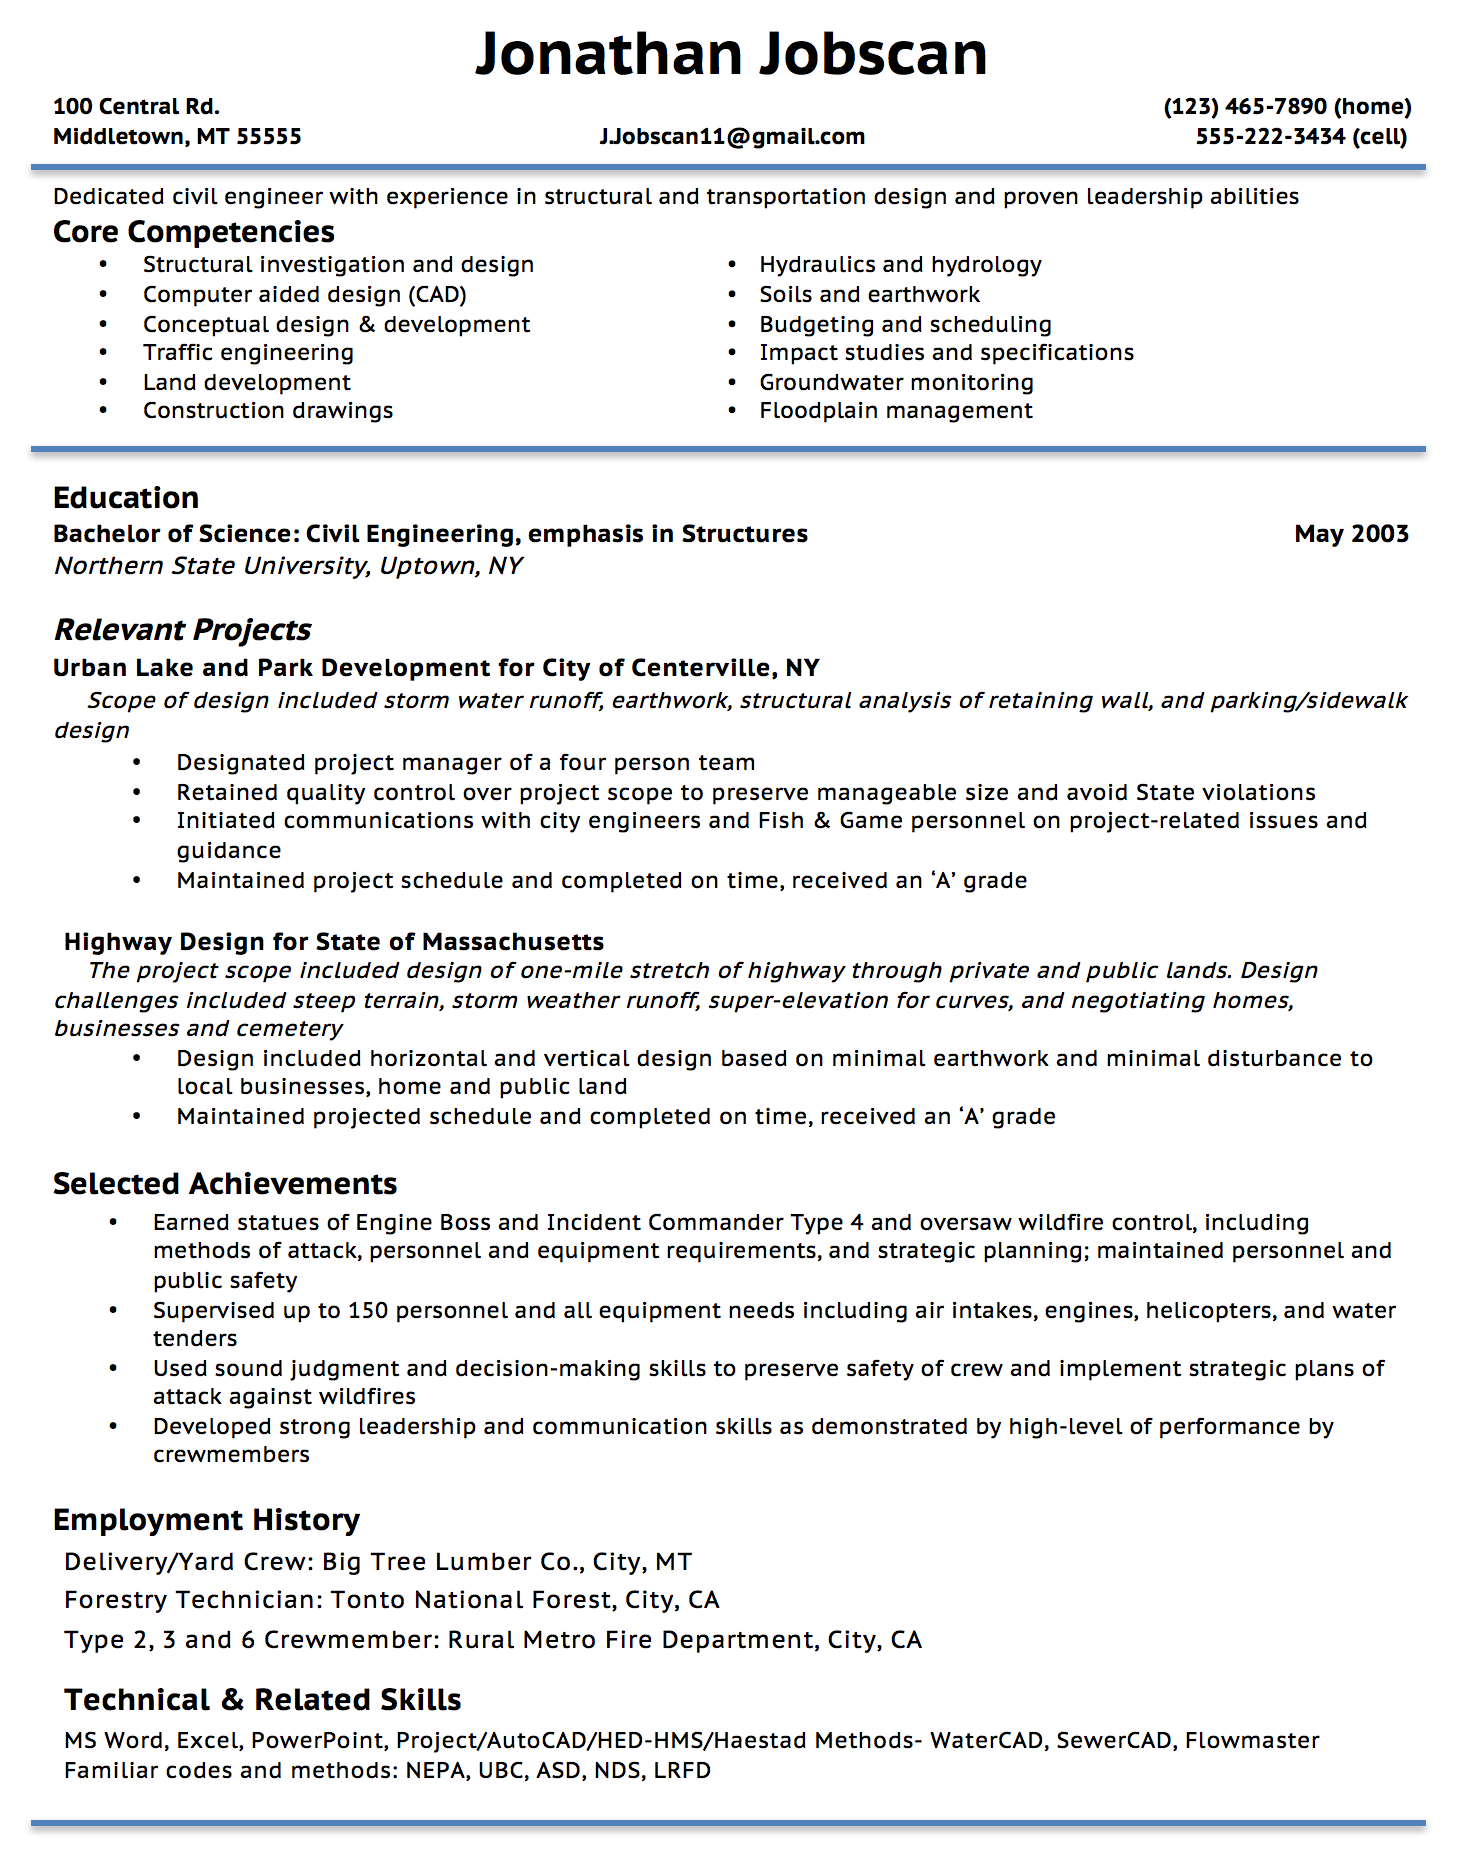 Opposenewapstandardsus  Pretty Resume Writing Guide  Jobscan With Handsome Example Of A Functional Resume Format With Divine Accounting Major Resume Also Junior Java Developer Resume In Addition Medical Assistant Resume Template Free And Print Resume For Free As Well As Junior Financial Analyst Resume Additionally Resume Taglines From Jobscanco With Opposenewapstandardsus  Handsome Resume Writing Guide  Jobscan With Divine Example Of A Functional Resume Format And Pretty Accounting Major Resume Also Junior Java Developer Resume In Addition Medical Assistant Resume Template Free From Jobscanco